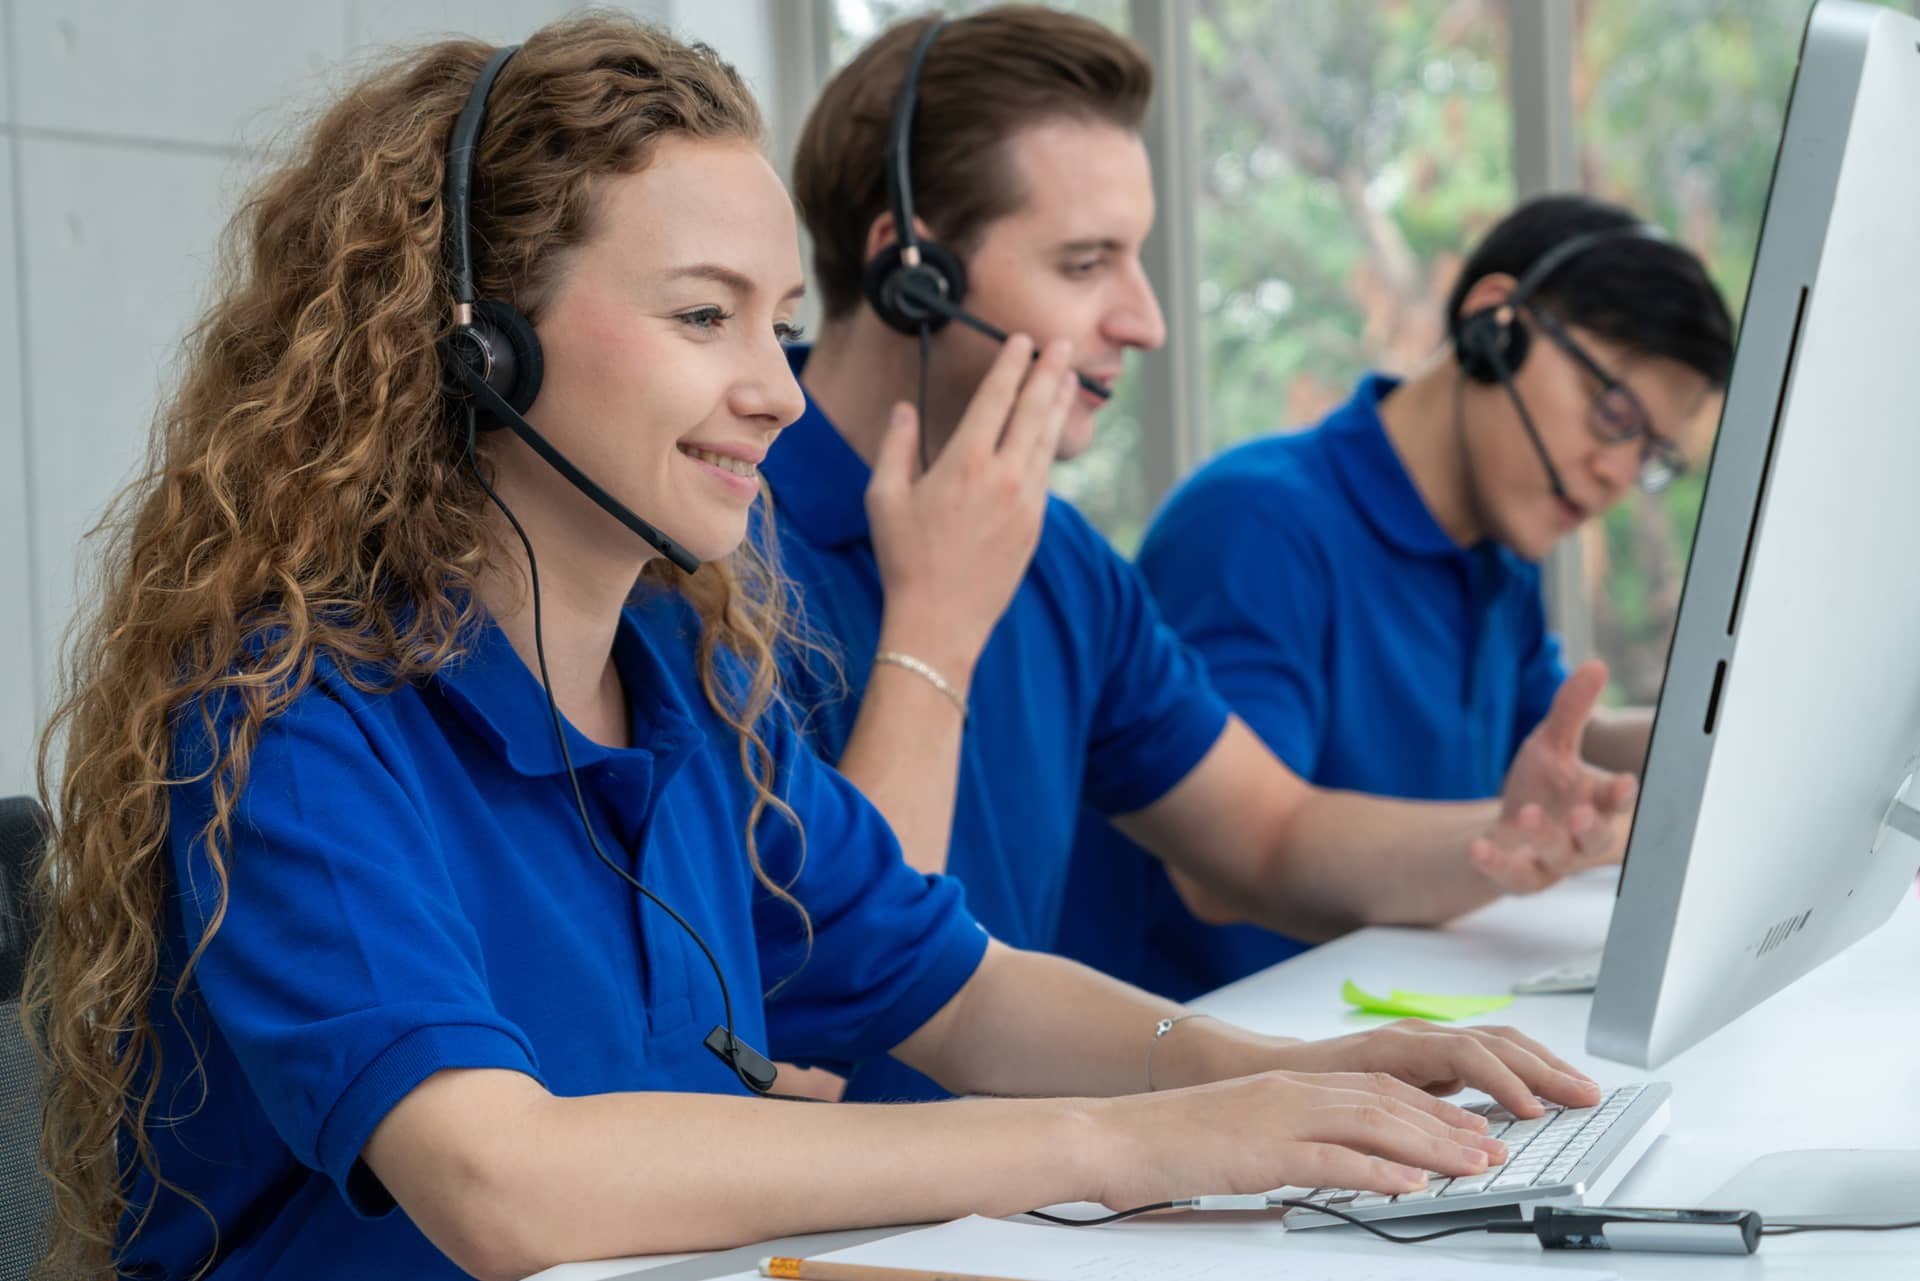 Why Choose Outsourced Business IT Support Over an In-House Technician